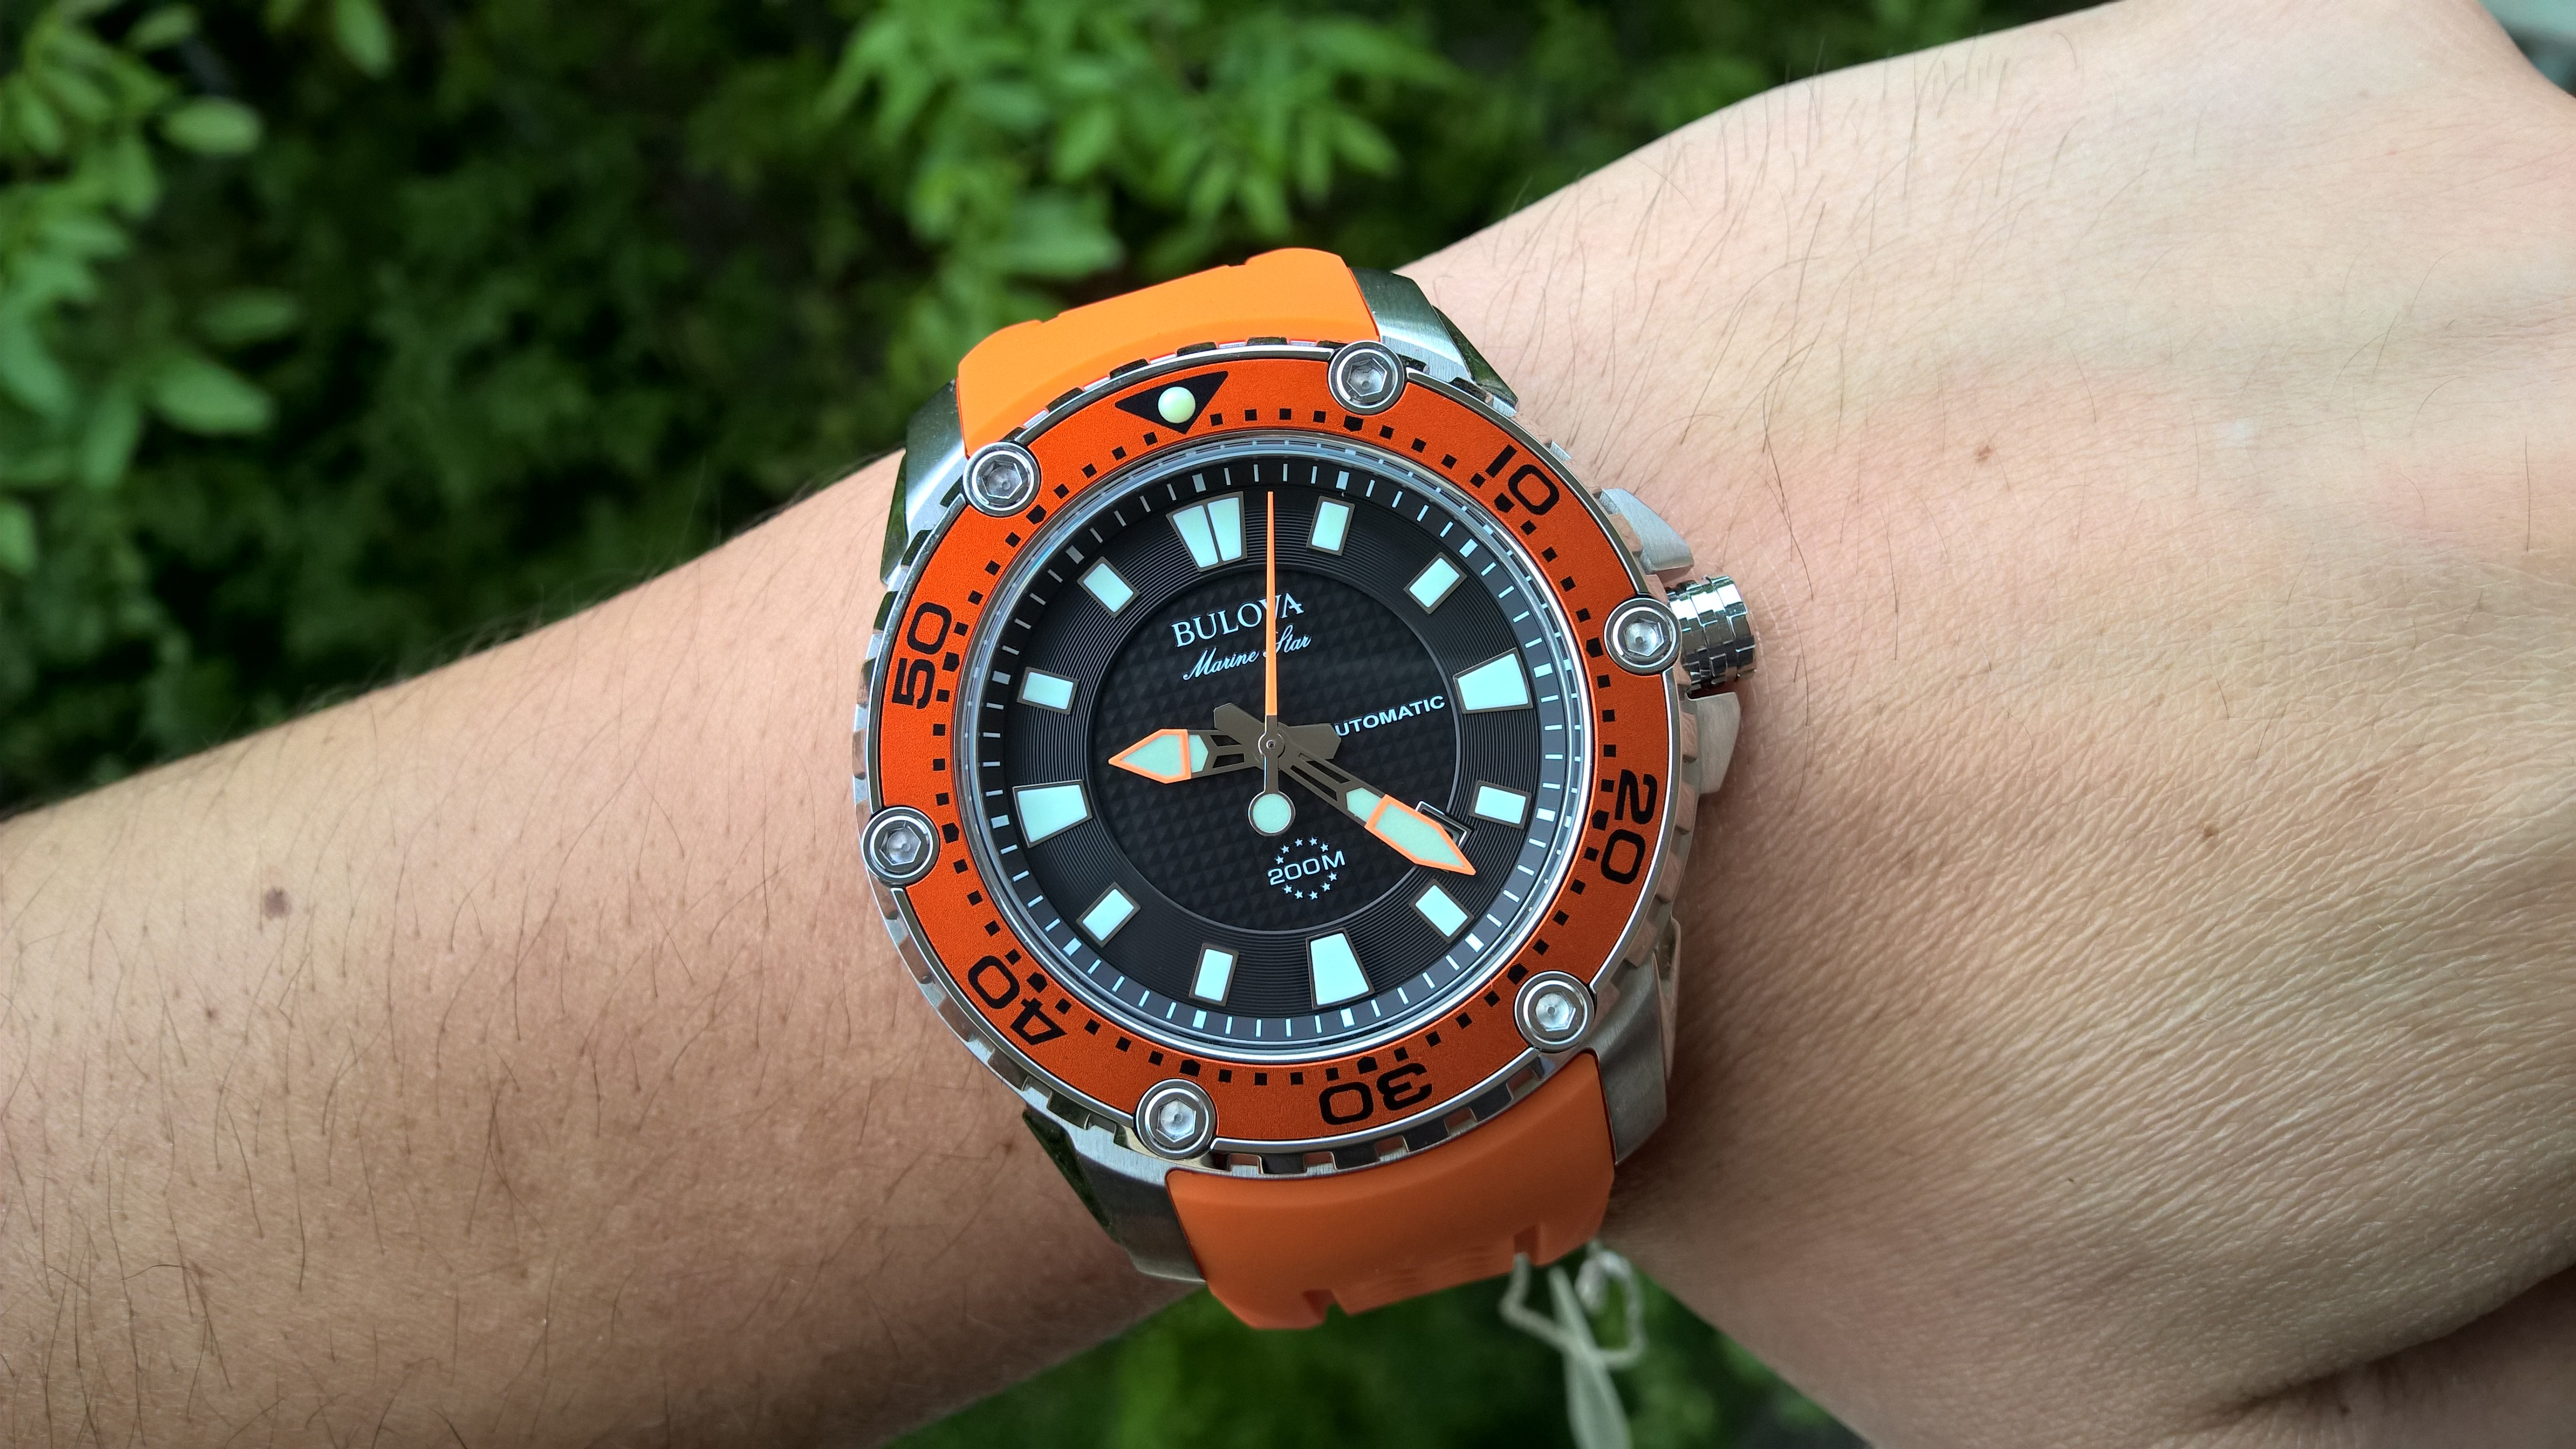 1d6fff9ddb41 I like orange watches! This color is somehow attached to horology - it is  kind of extravagant